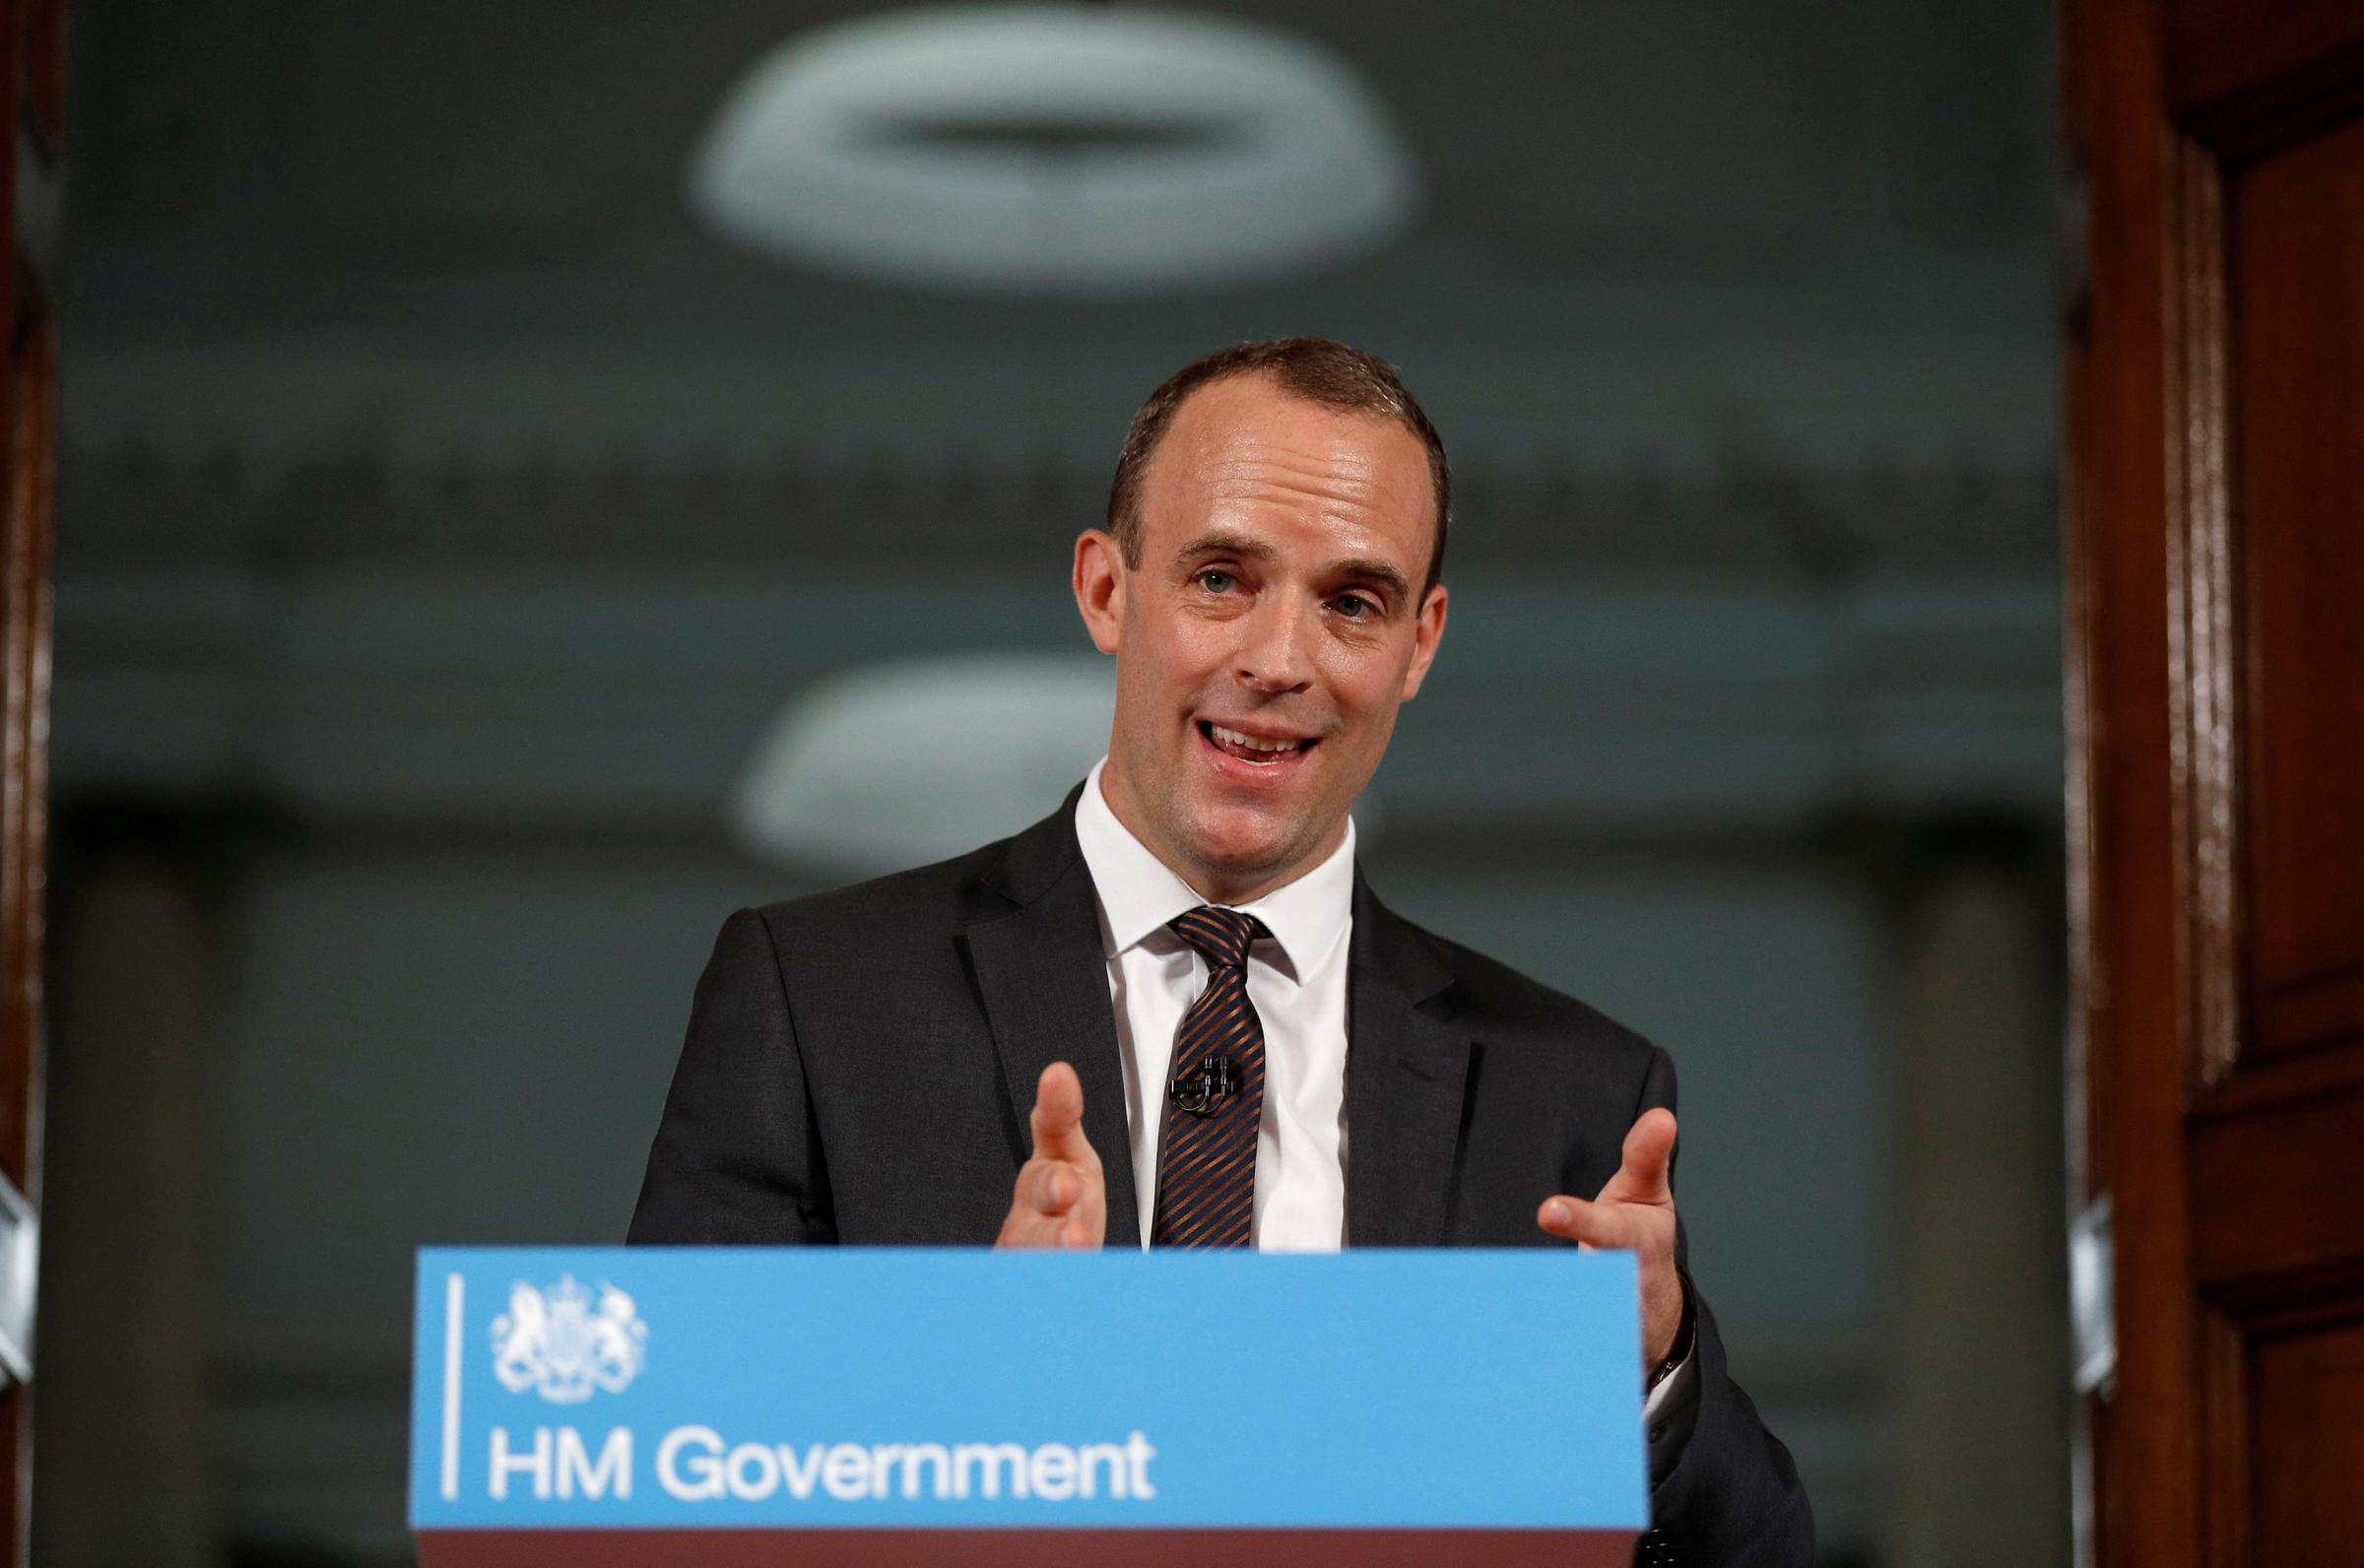 Brexit Secretary Dominic Raab delivers a speech in central London, on preparations for a no deal Brexit which coincides with the publication of the first of the Government's technical notes on the no deal preparations. PRESS ASSOCIATION Photo. Picture